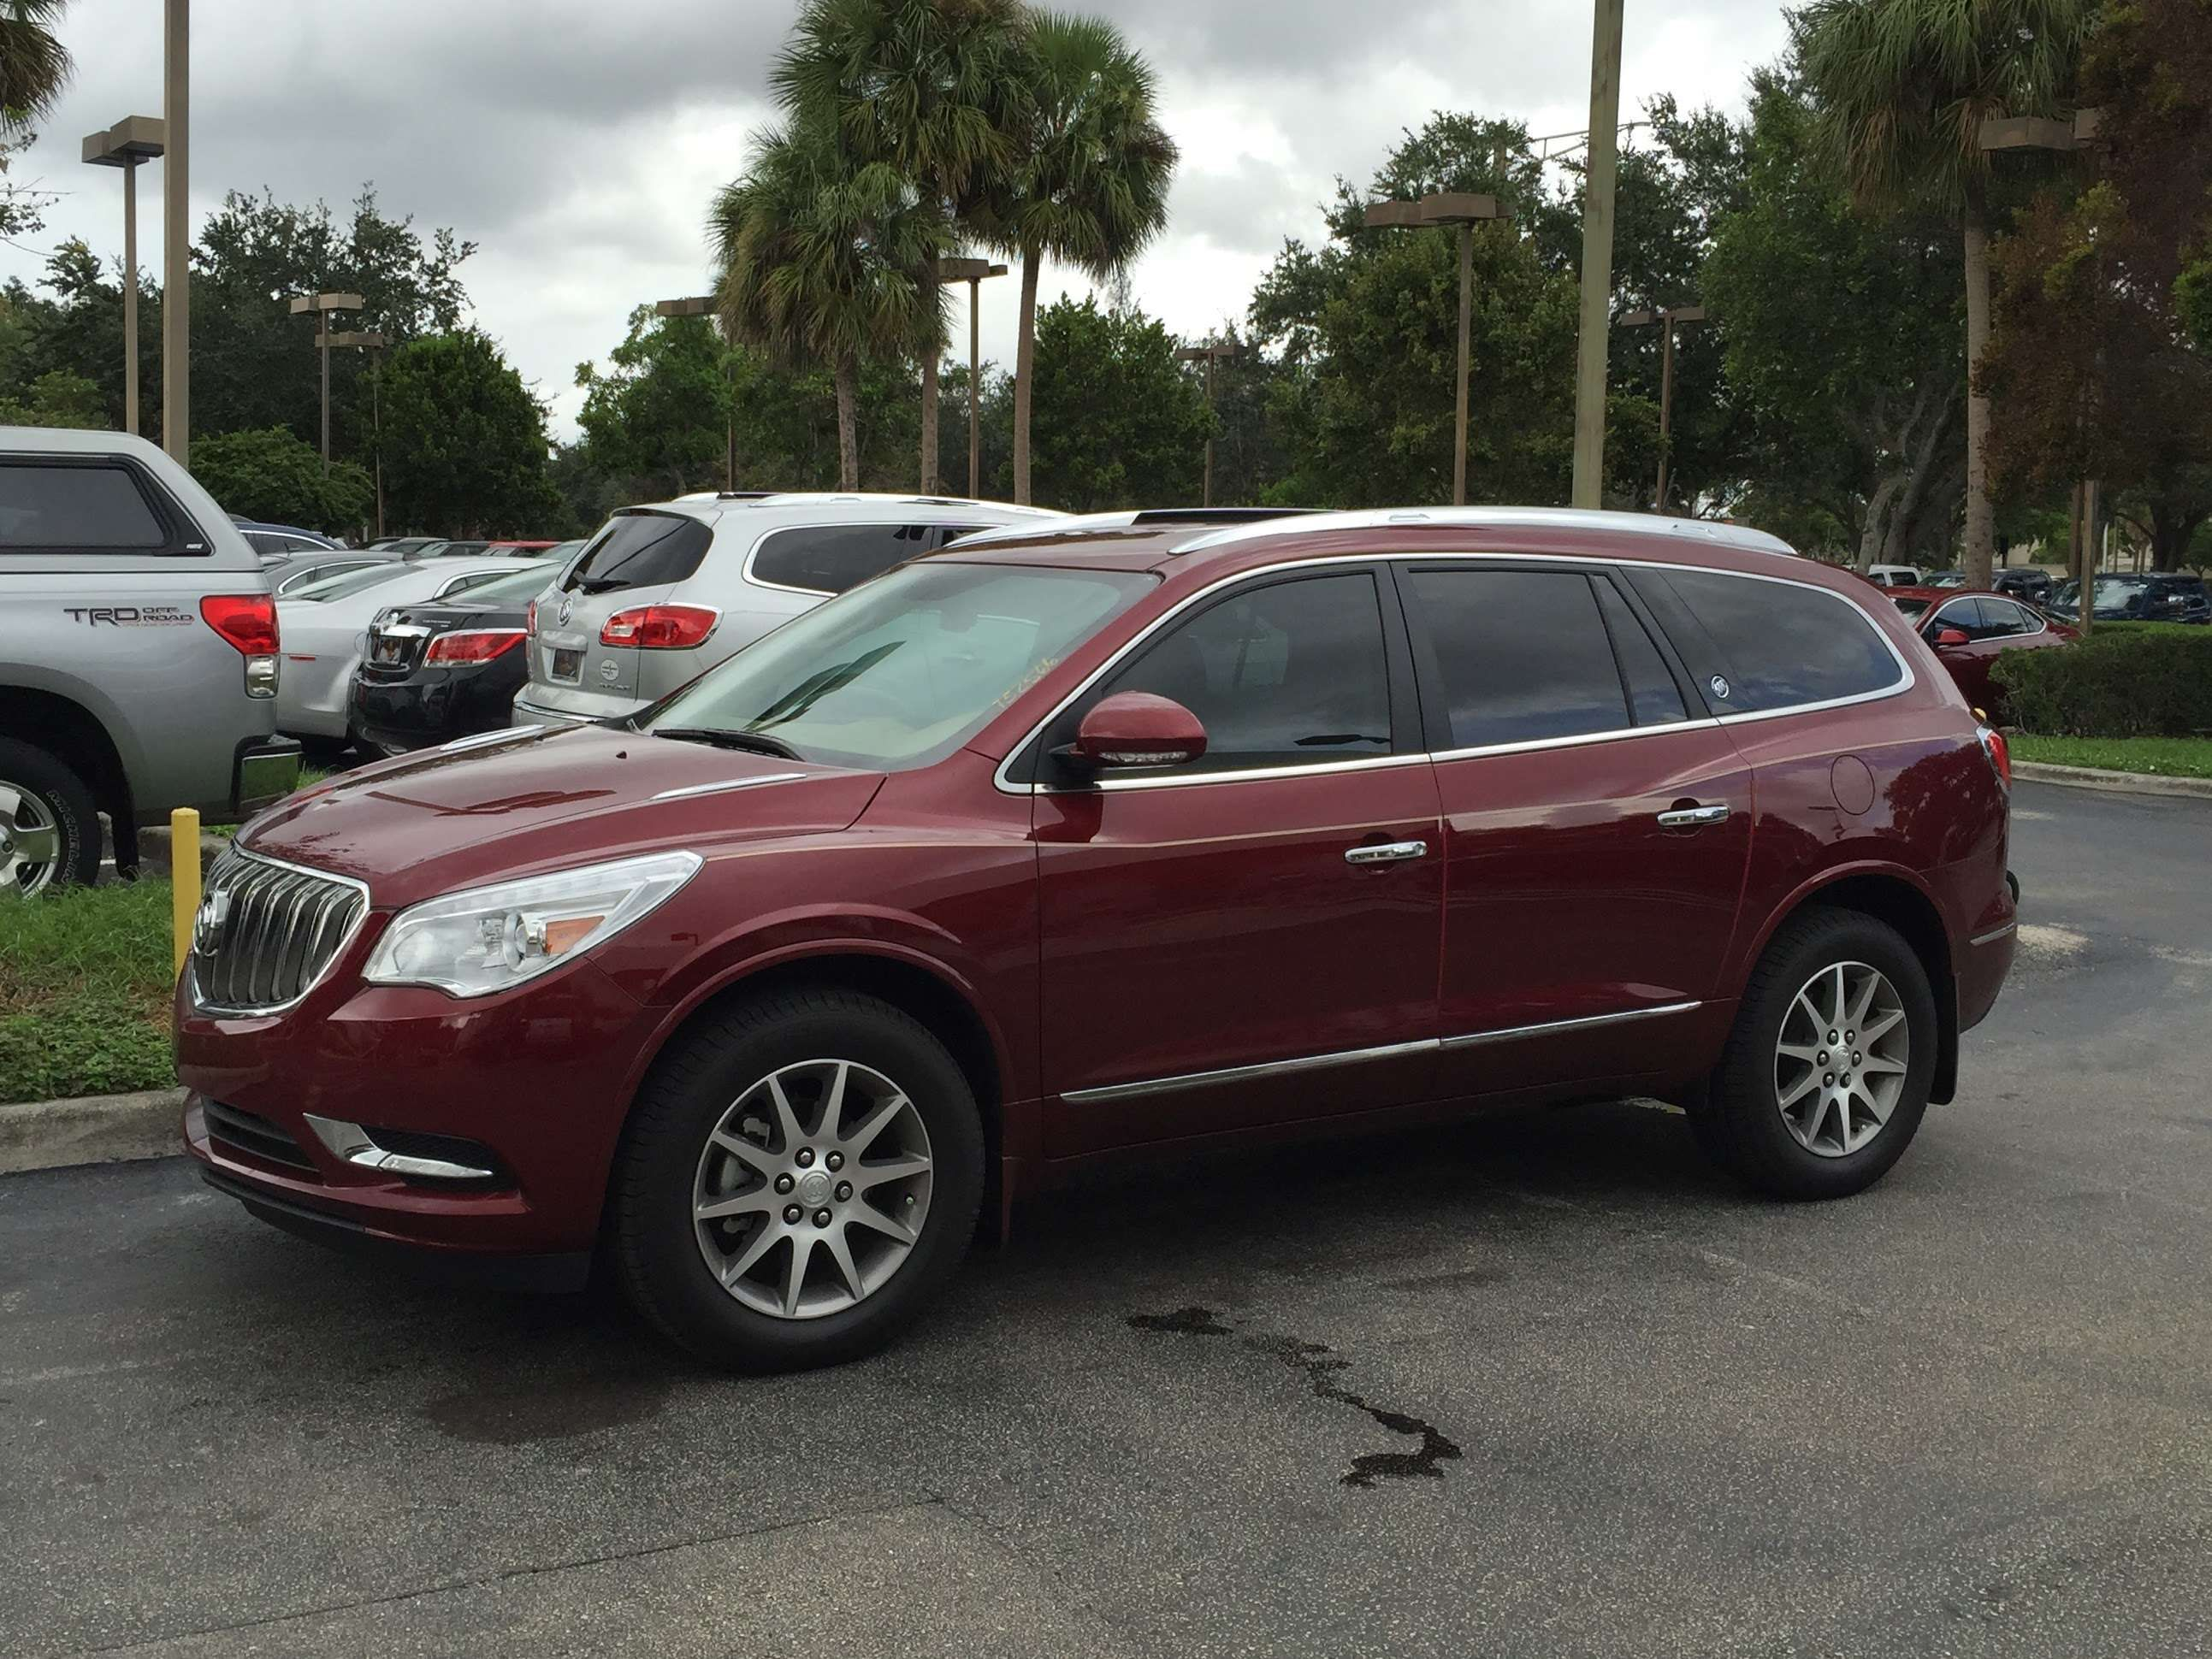 brand reports auto buick shocks u money reliability story suv survey this puts cars lauding s consumer top by